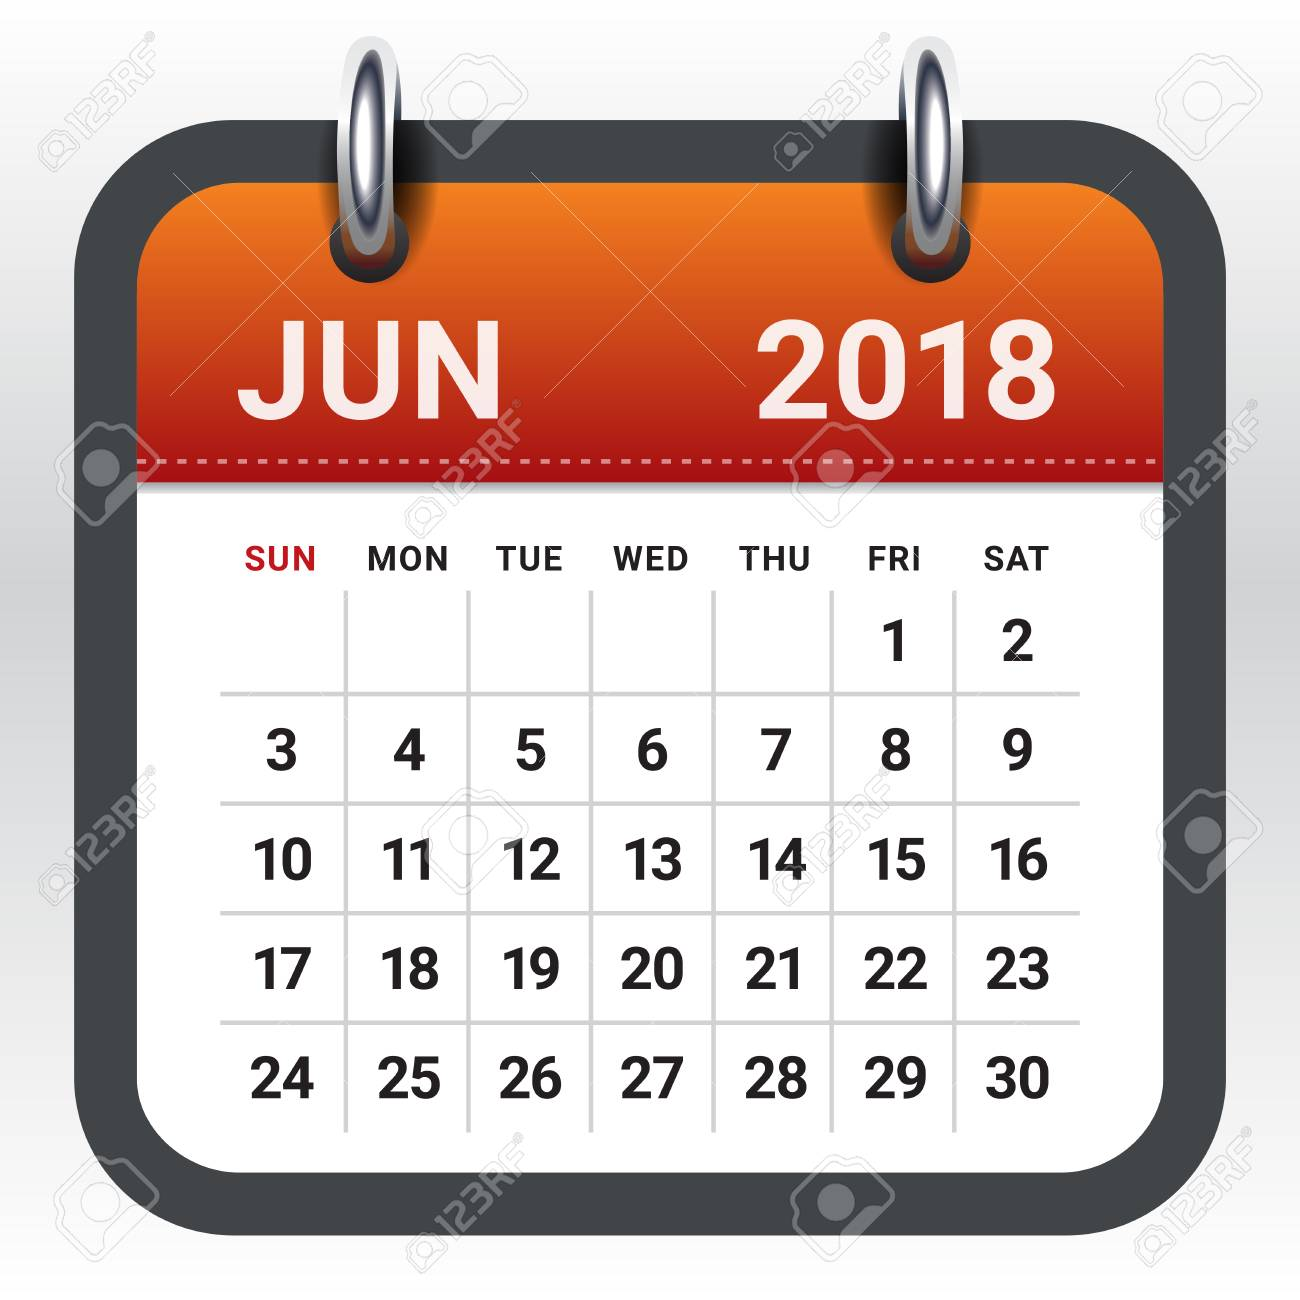 June 2018 Calendar Vector Illustration, Simple And Clean Design ...